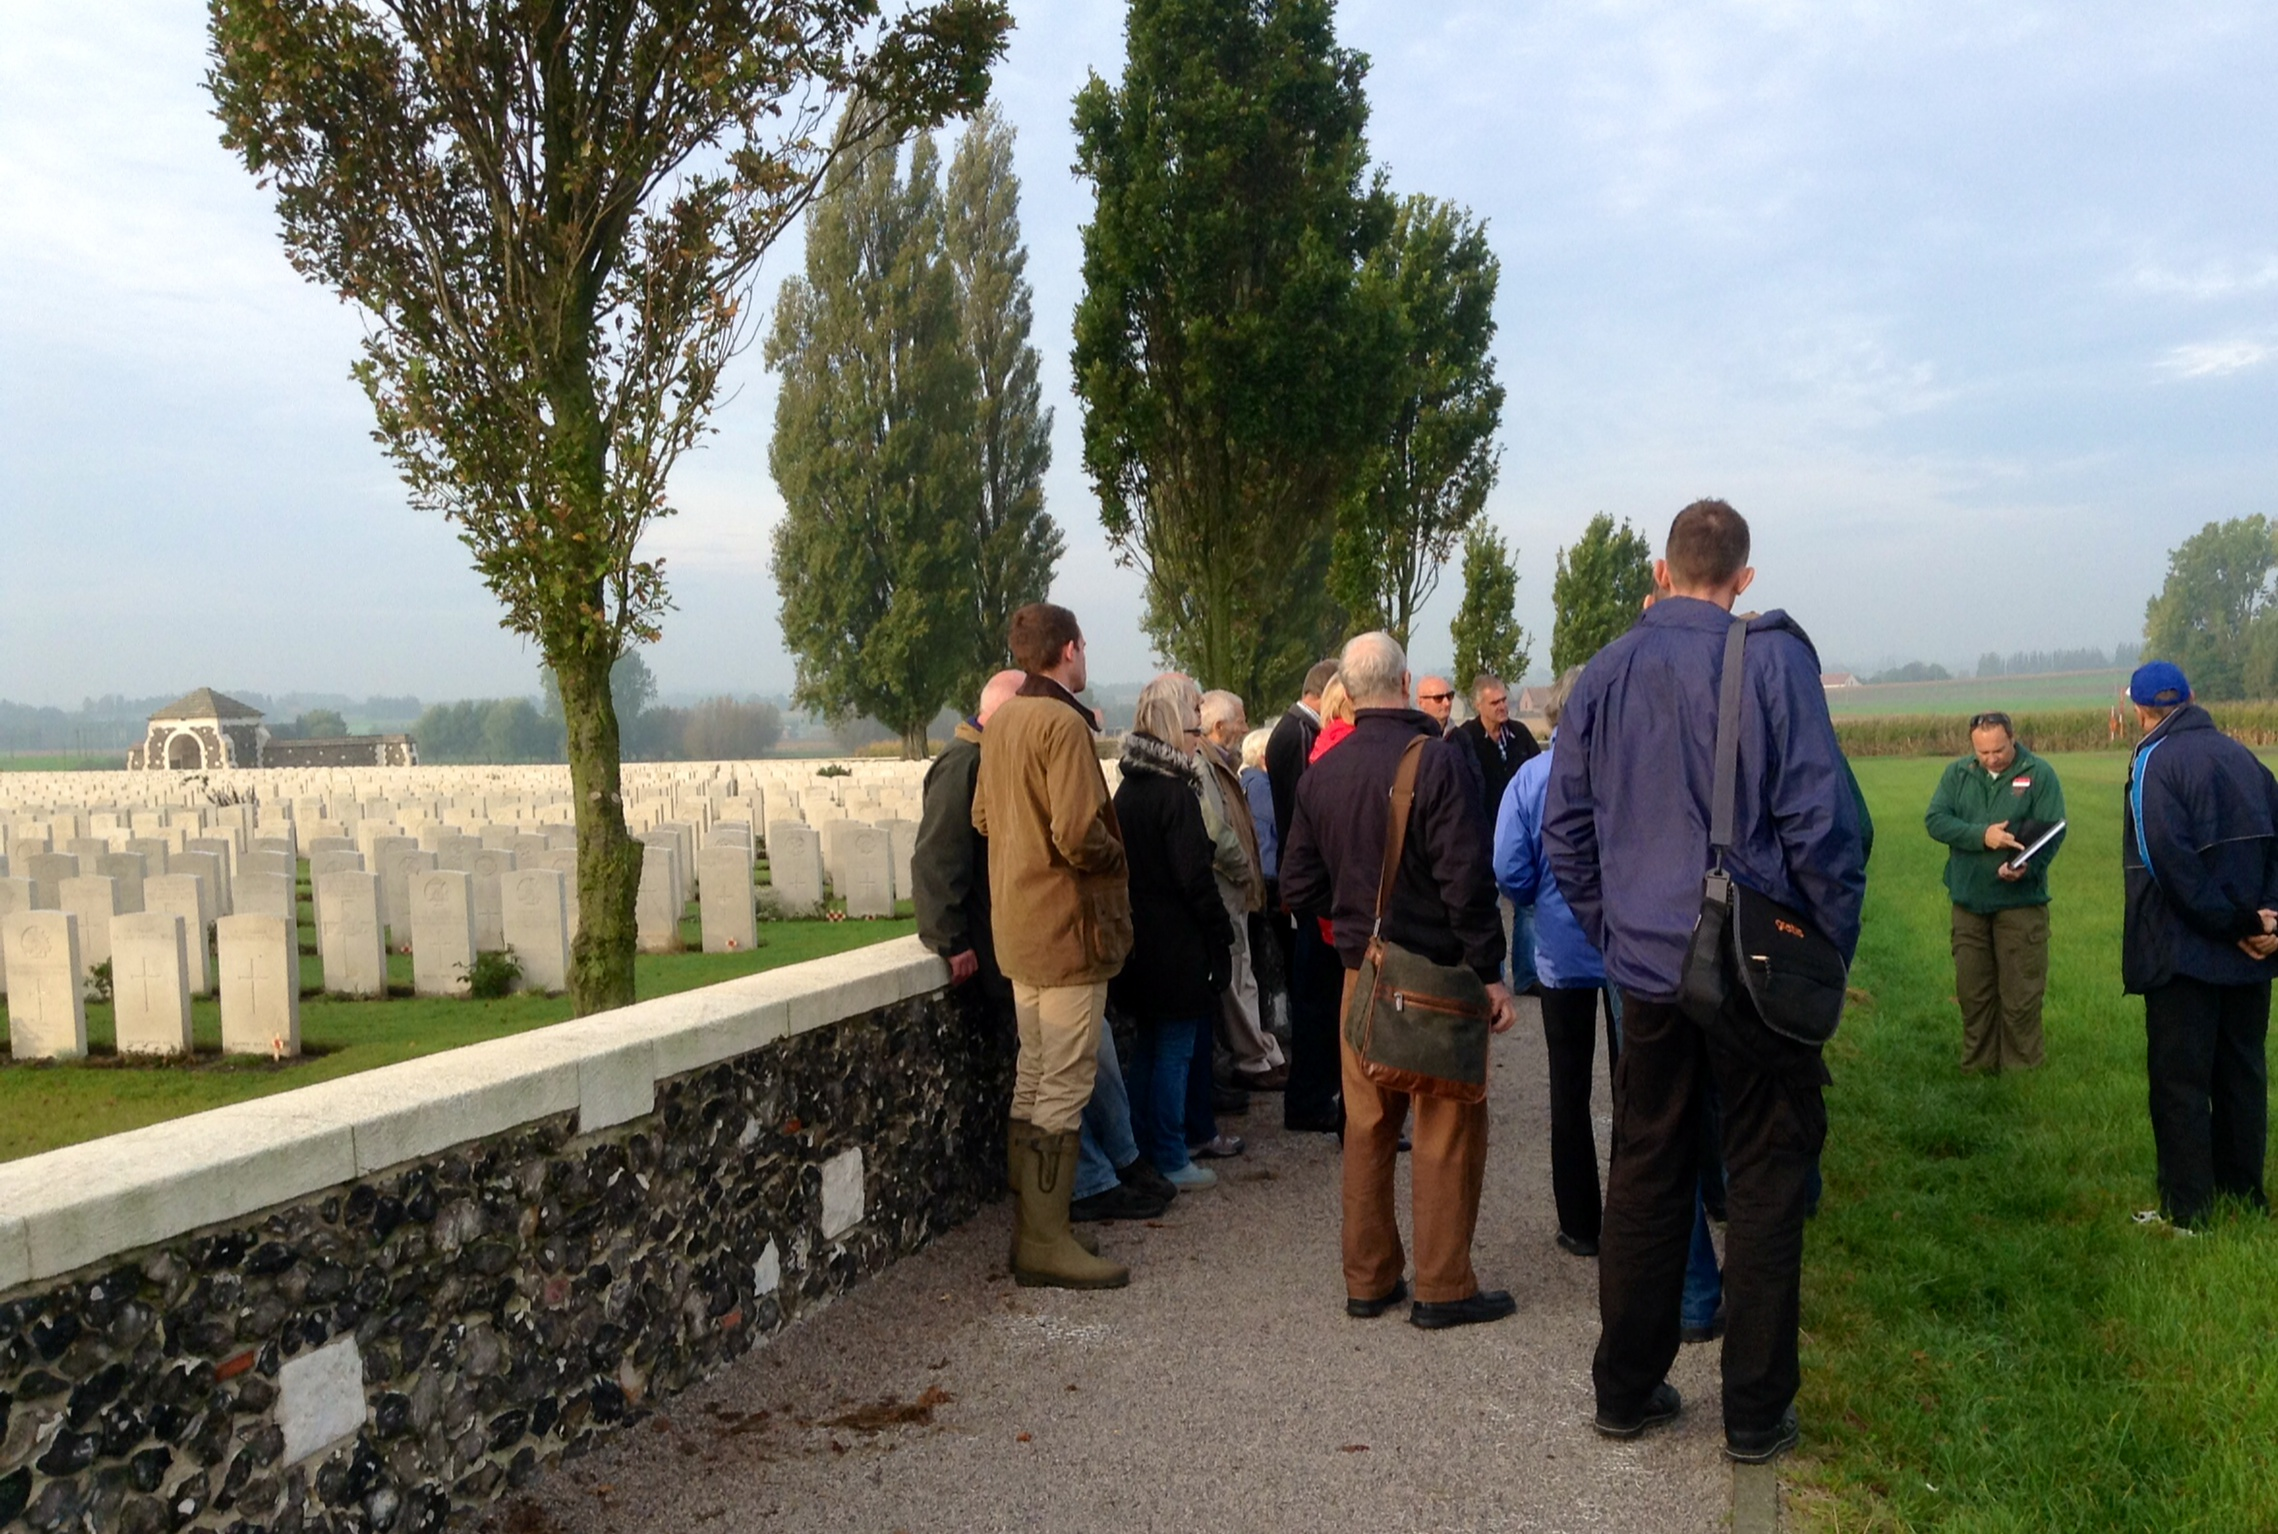 03 The group at Tyne Cot Cemetery